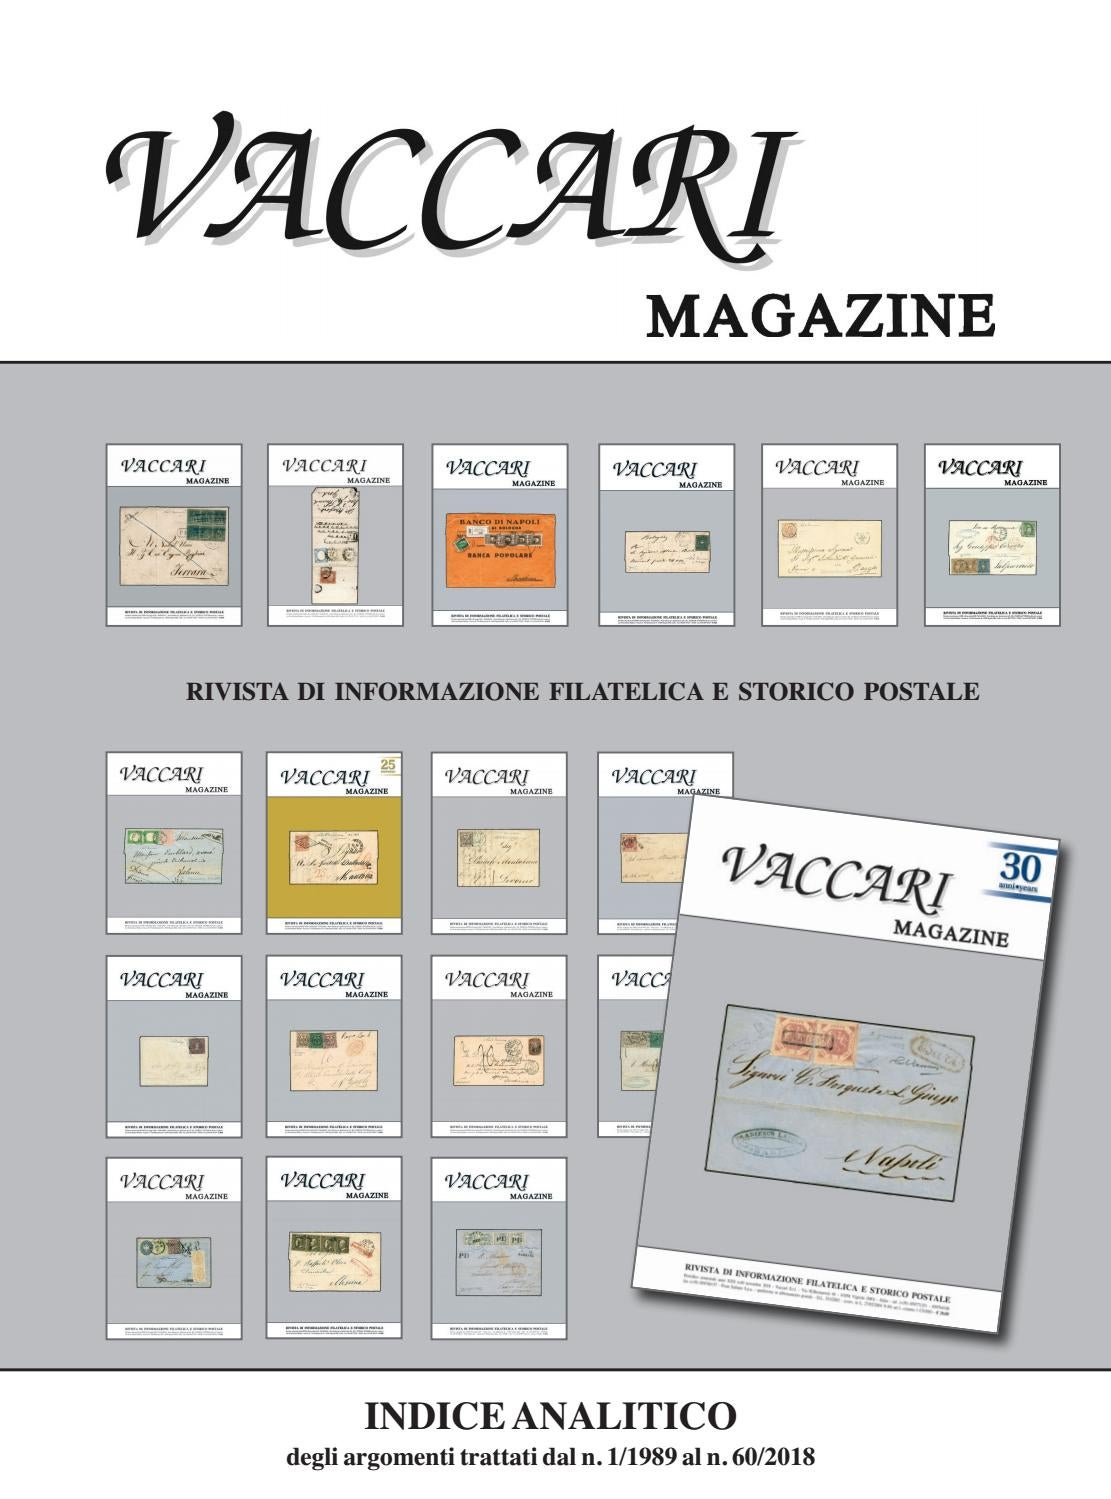 Vaccari Magazine indice analitico 1-60 by Vaccari - issuu 3efcde2cadcc